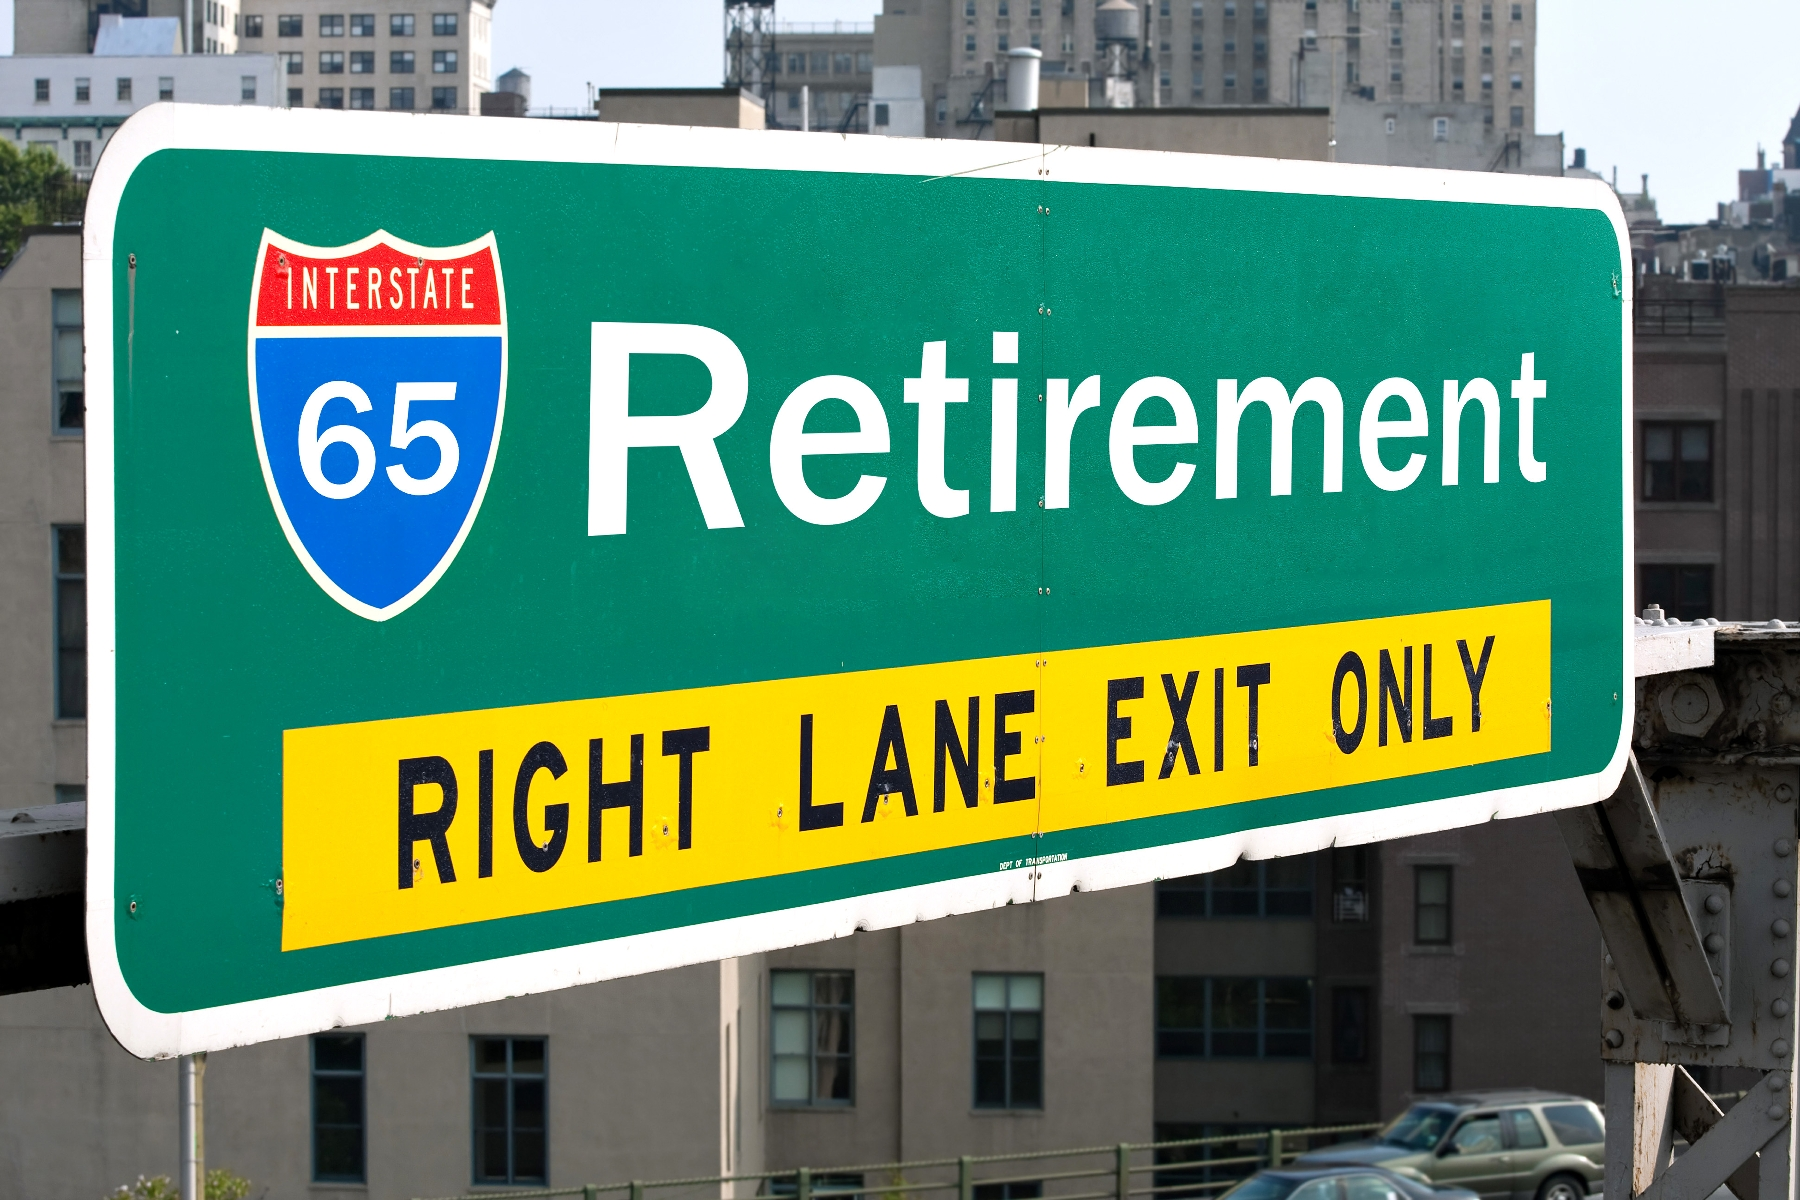 3 Properties to Consider for Retirement